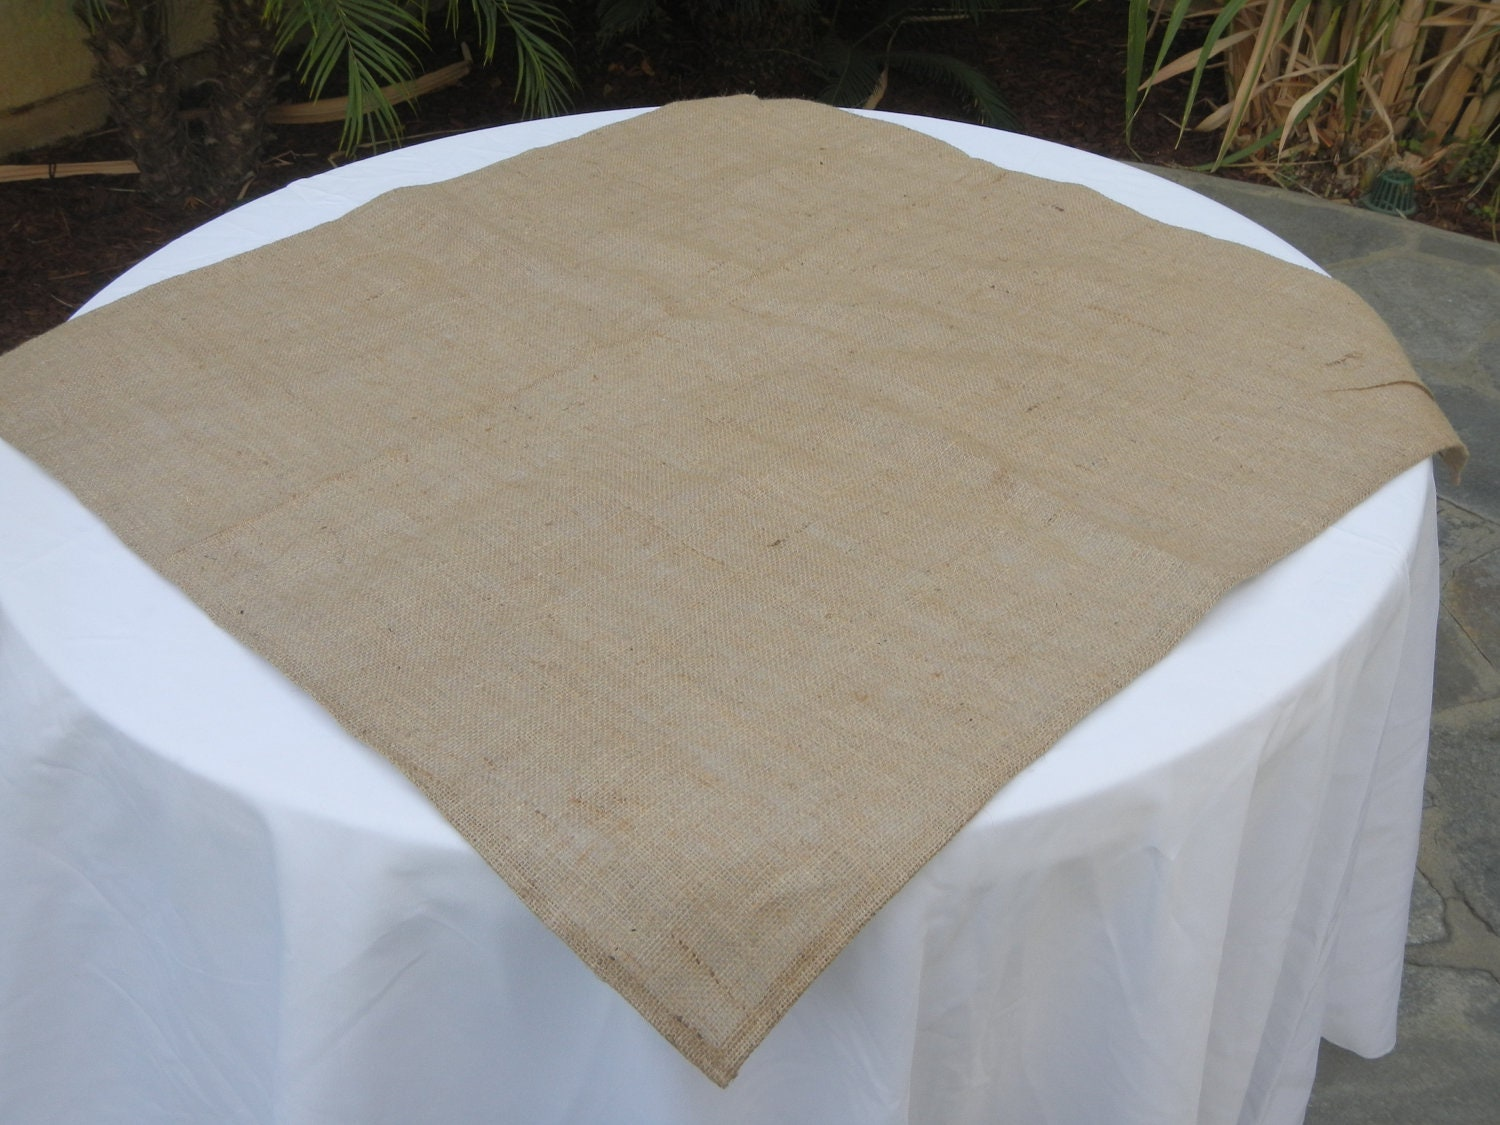 Burlap Round Table Overlays Burlap Table Square Burlap Overlay Wedding Party Shower